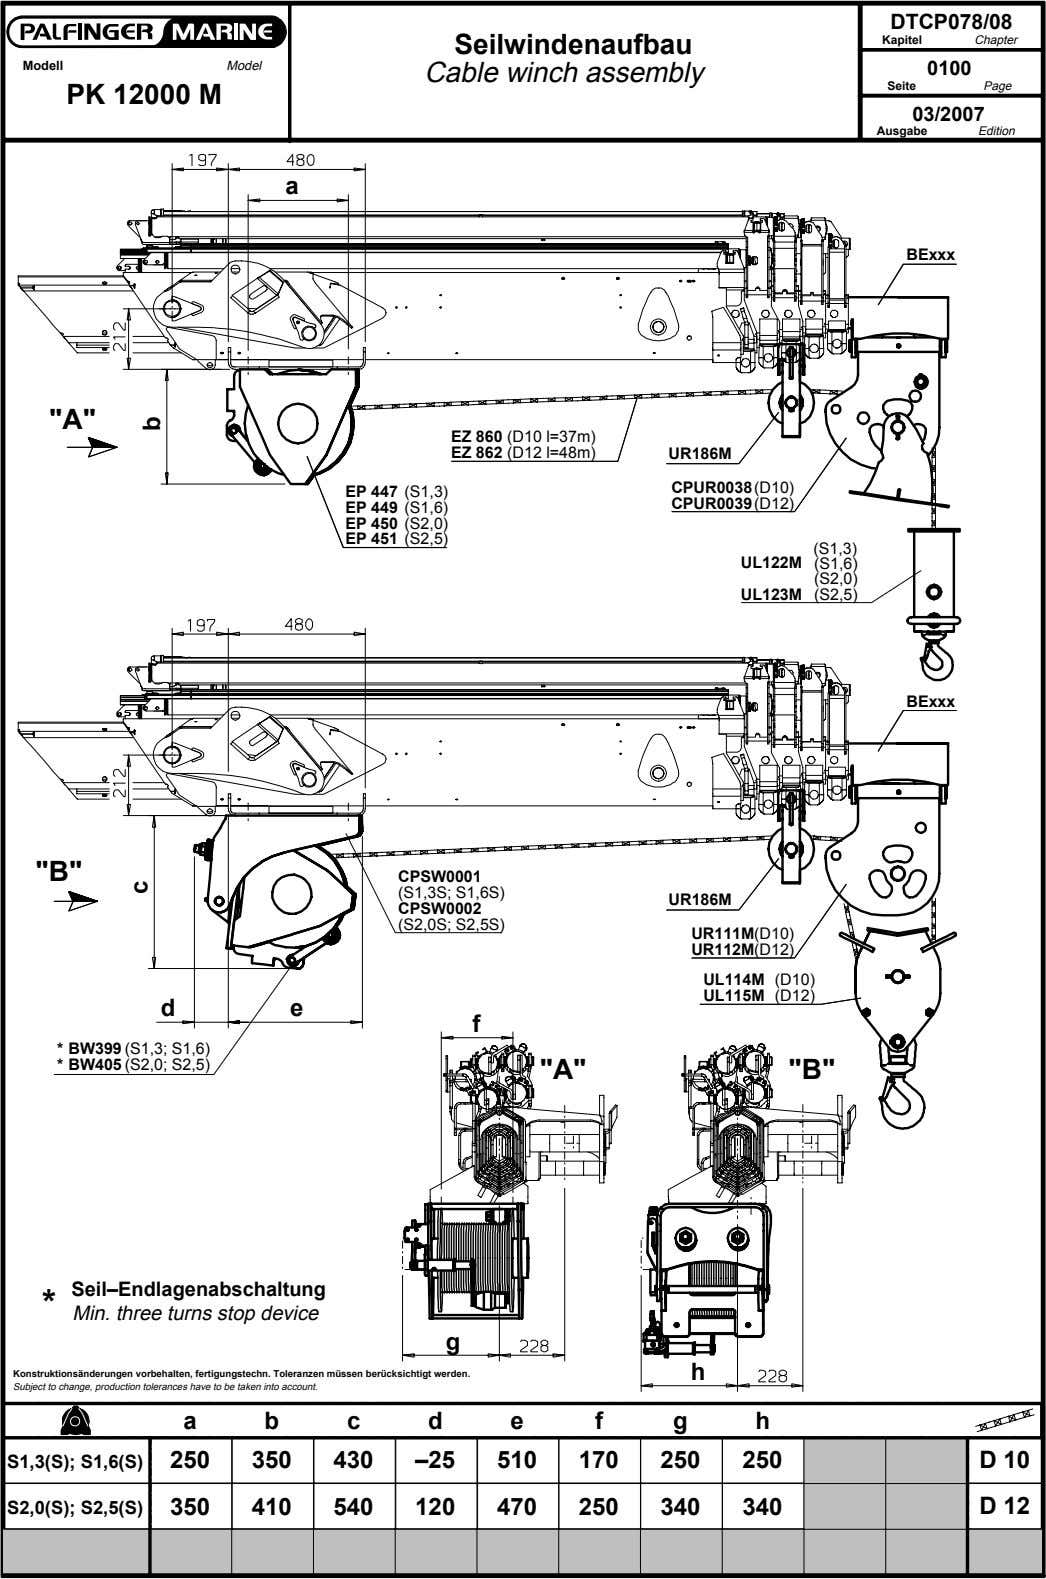 DTCP078/08 Seilwindenaufbau Kapitel Chapter Modell Model Cable winch assembly 0100 Seite Page PK 12000 M